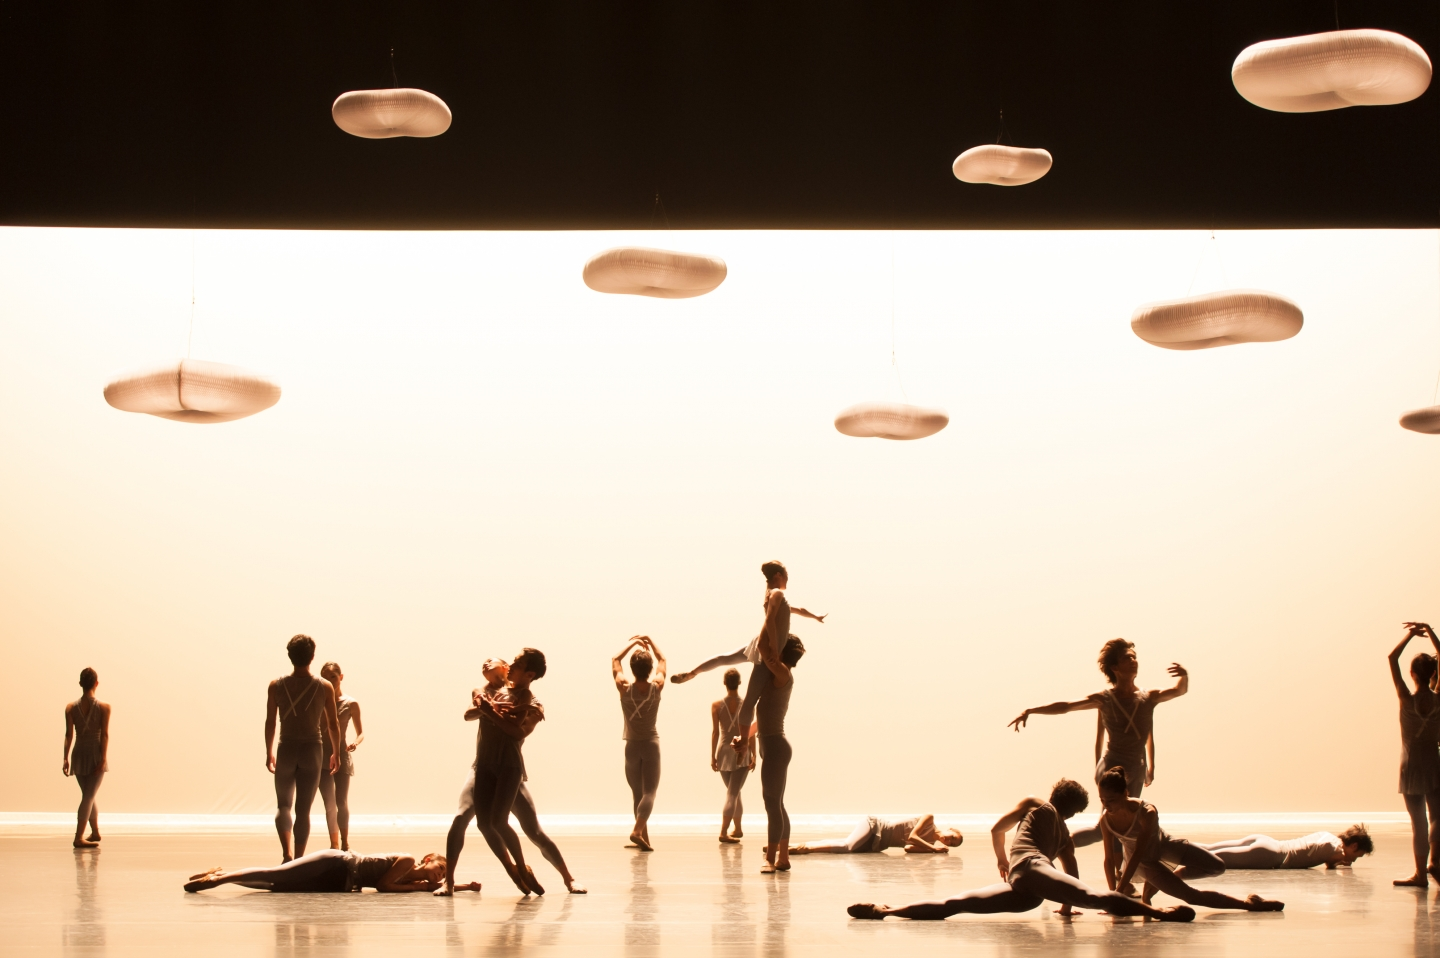 molo cloud pendant lighting for Escaping the Weight of Darkness choreographed by Jessica Lang and performed by the National Ballet of Japan